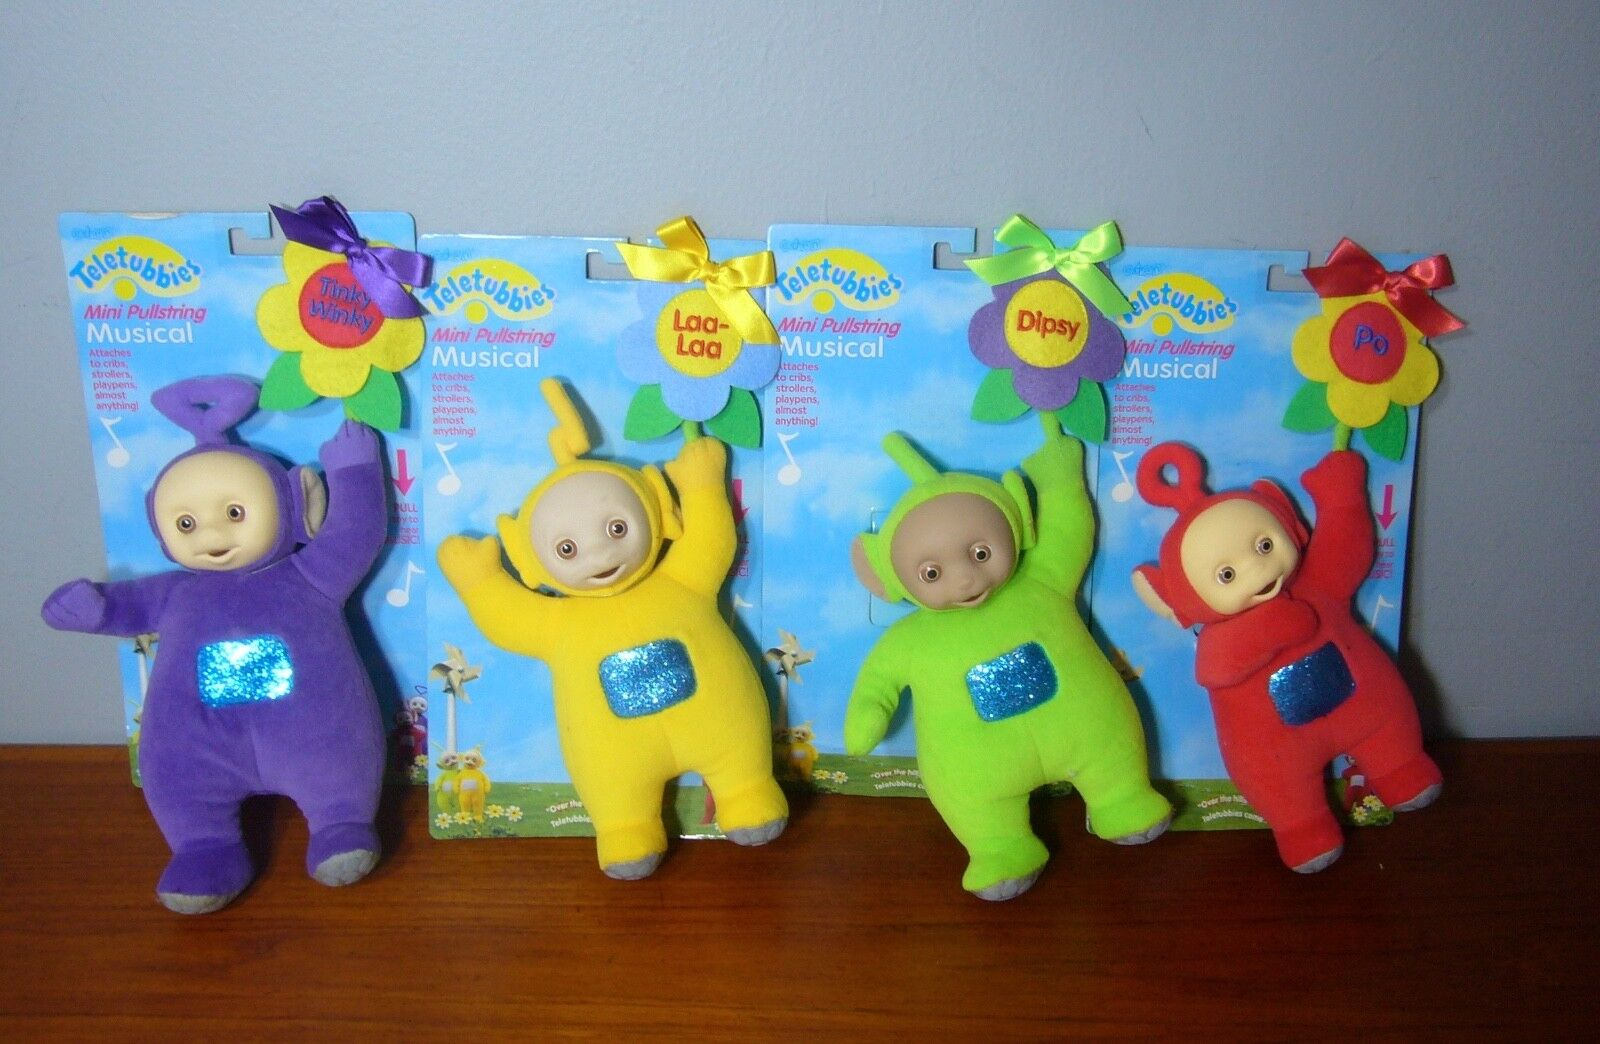 Set 4 Teletubbies Pullstring Musical Musical Musical Plush Doll Lot New In Package 1999 Eden Toy a46